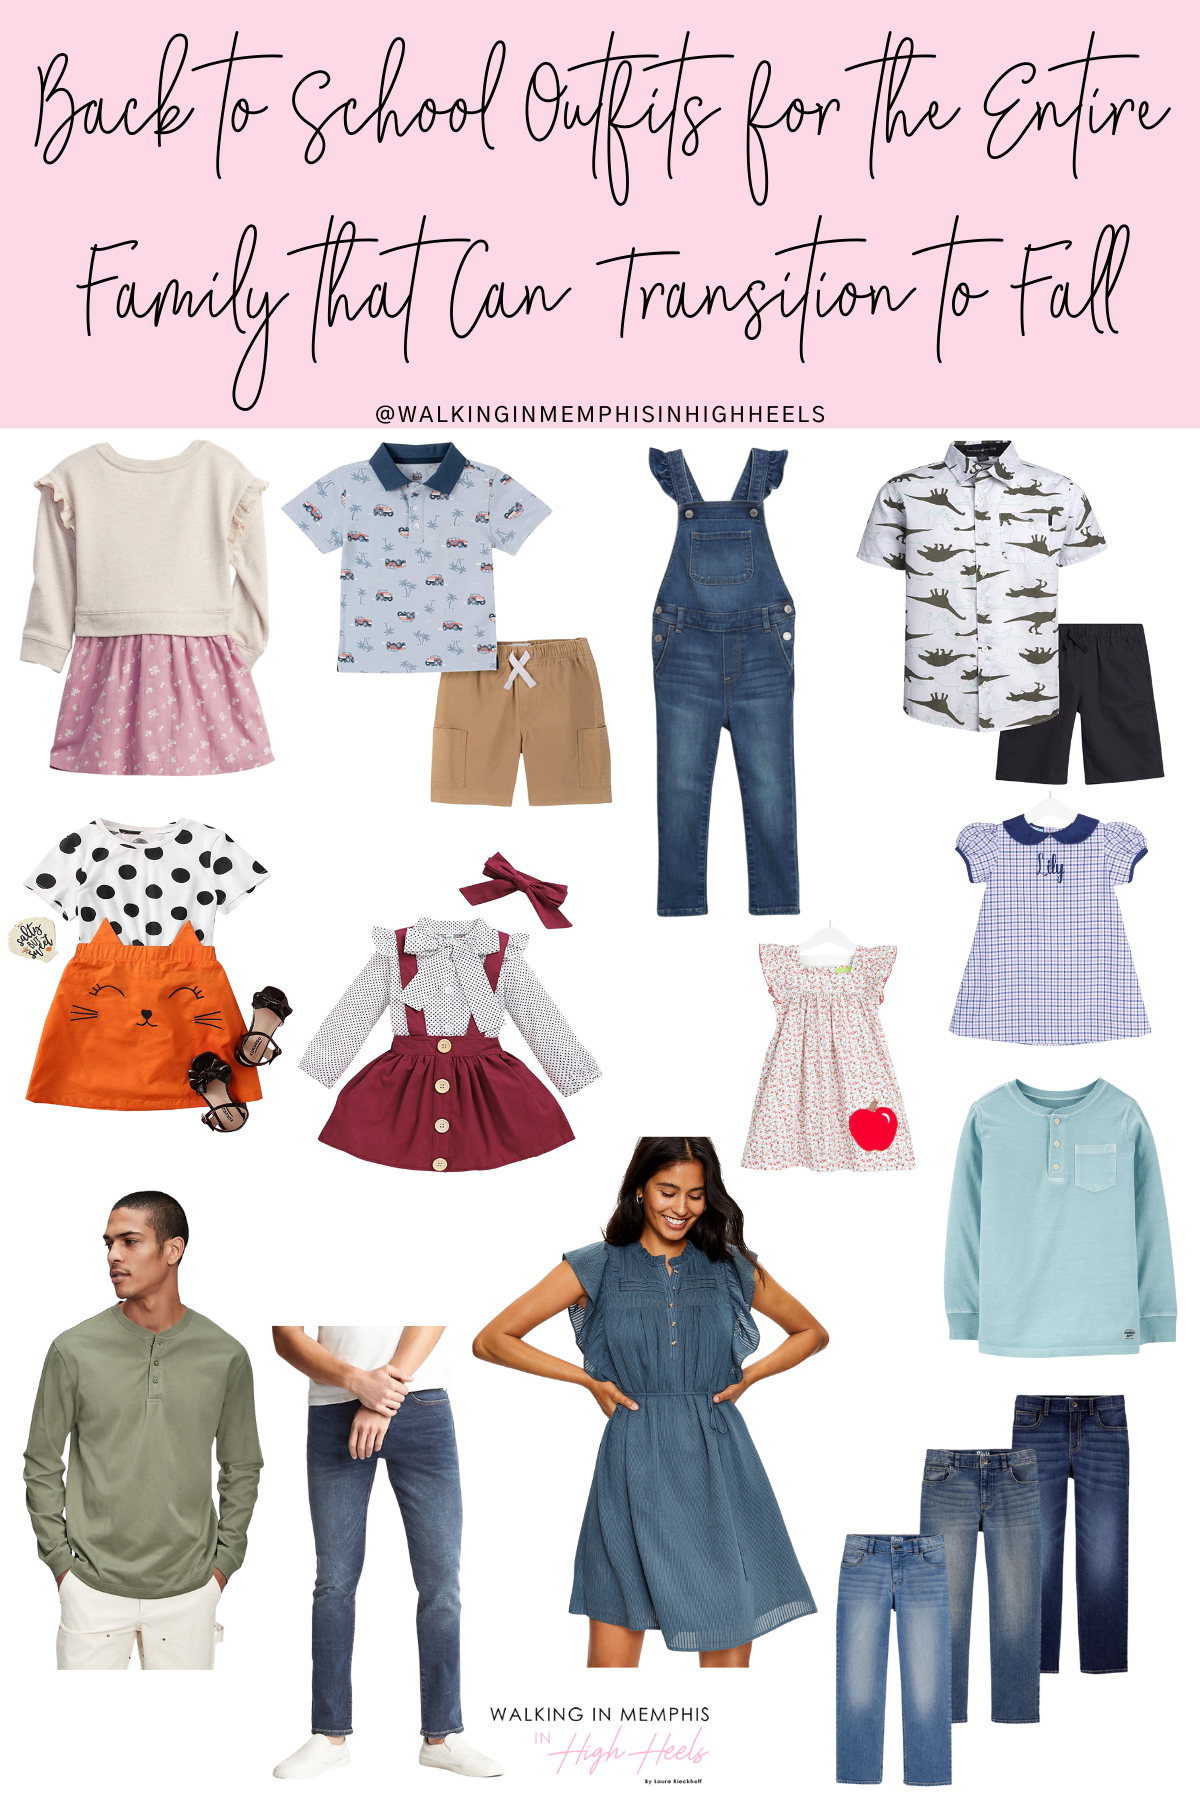 Back to School Outfits for the Entire Family featured by top US fashion blogger, Walking in Memphis in High Heels.